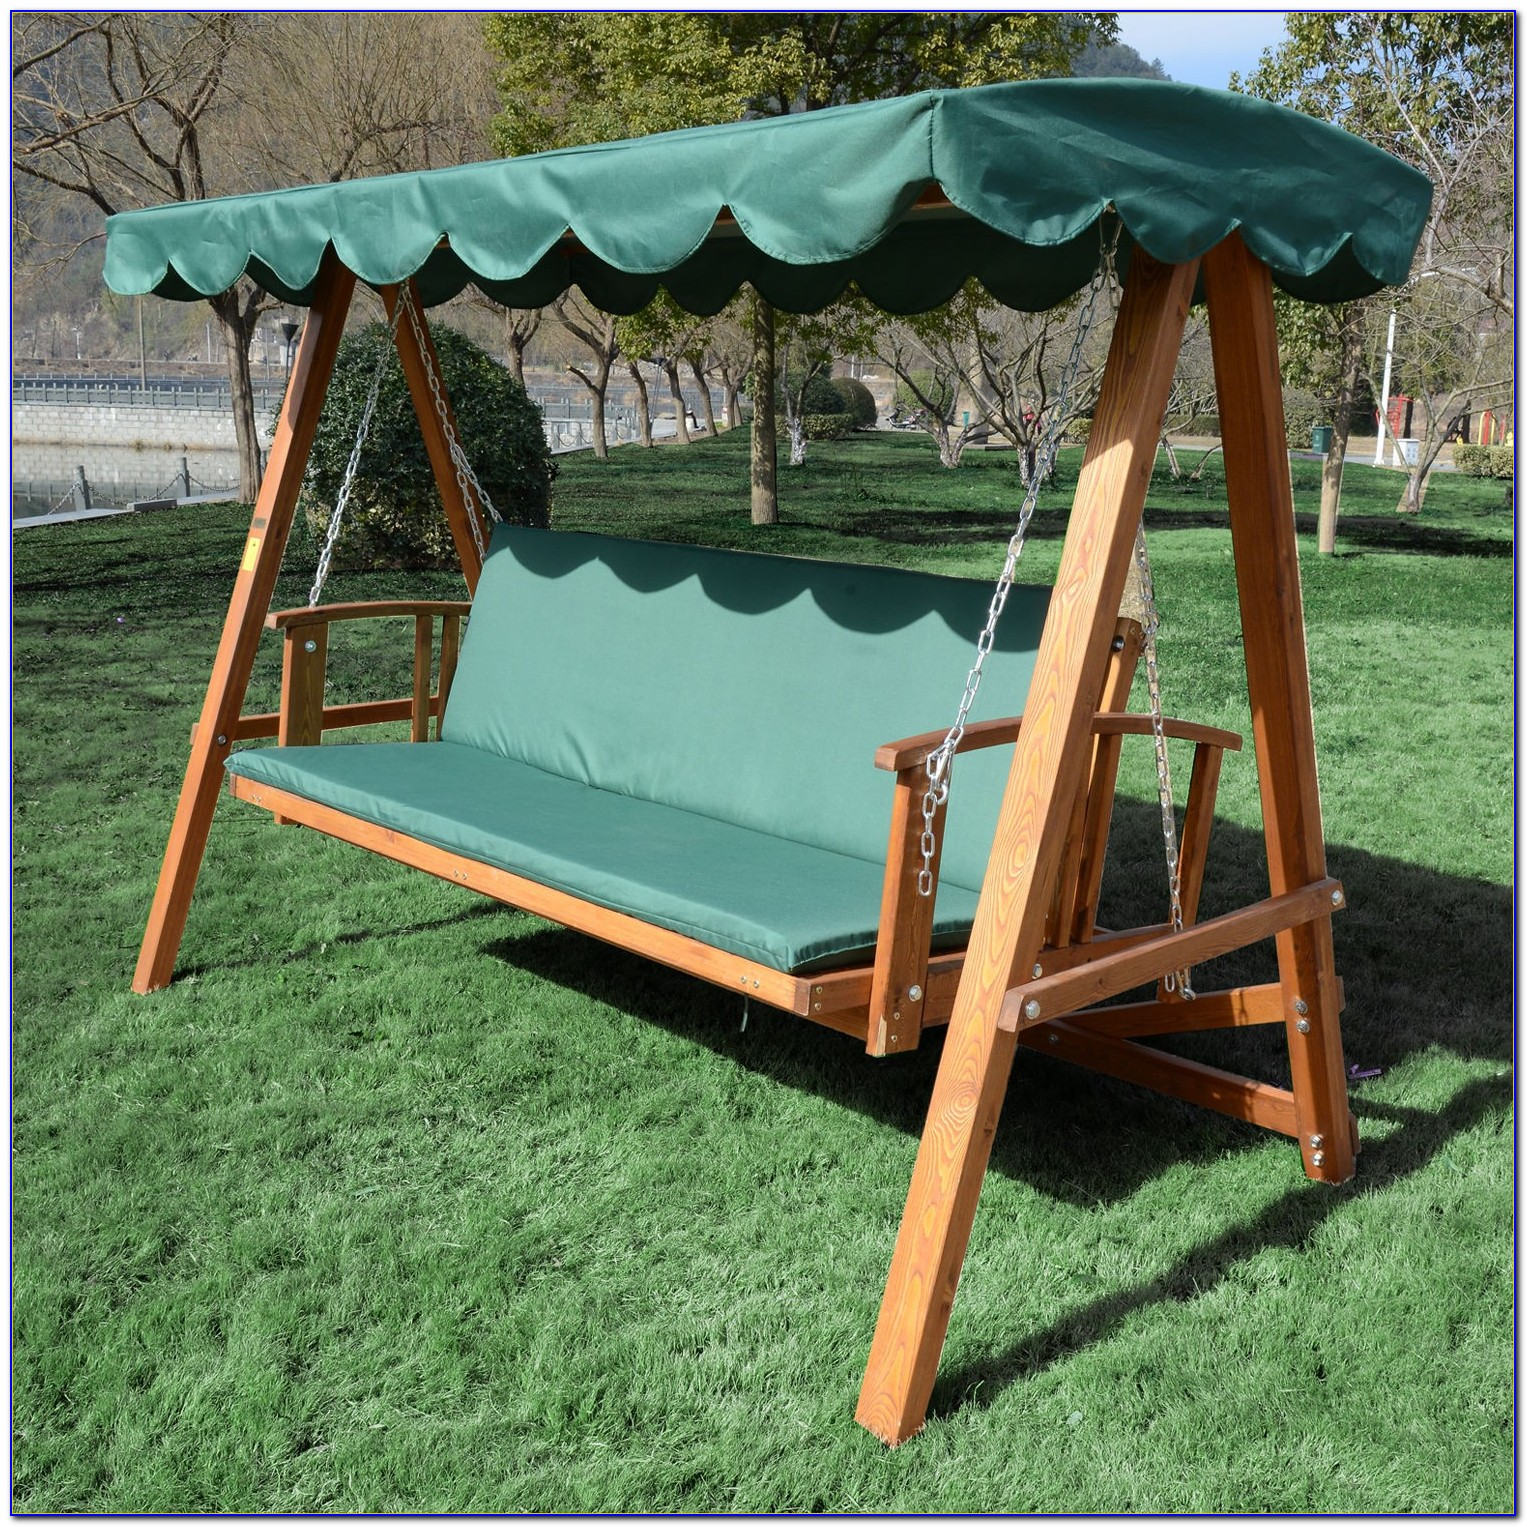 Blooma Aland Wooden Garden Swing Bench